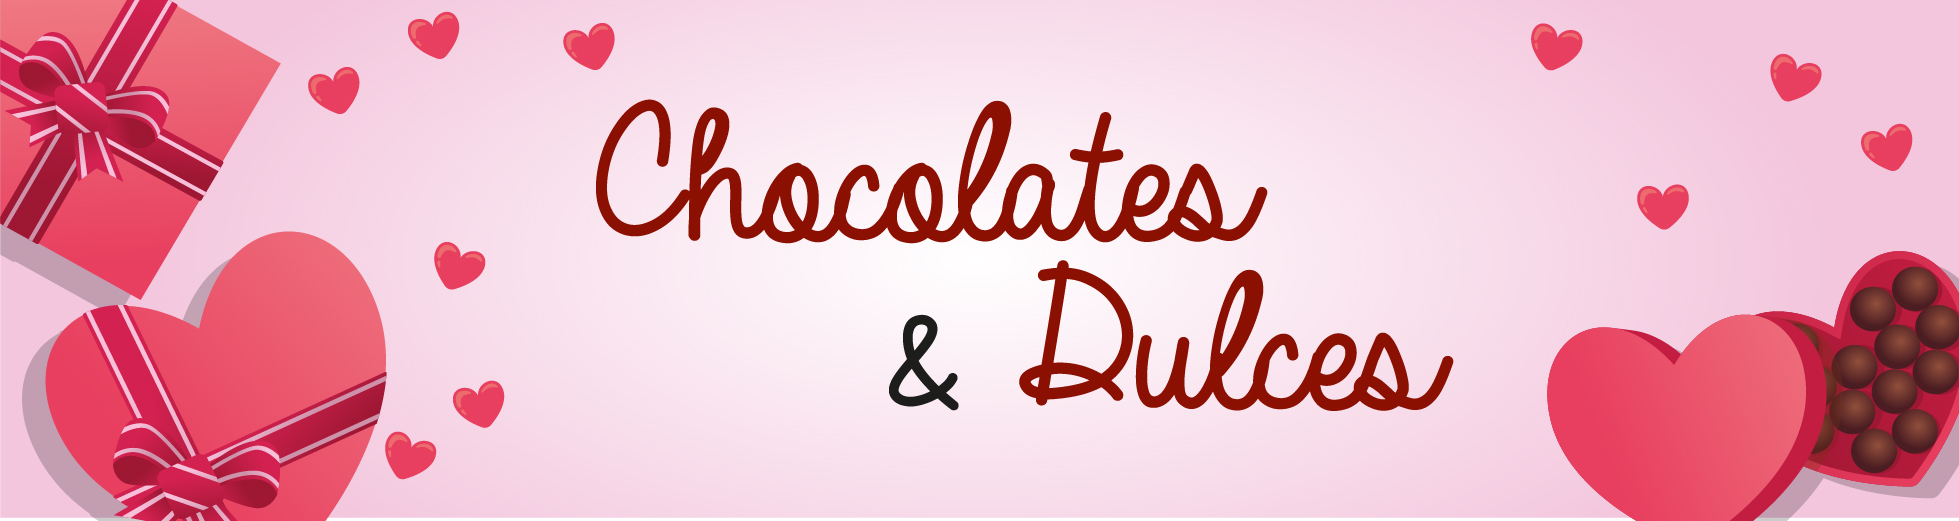 chocolates y dulces